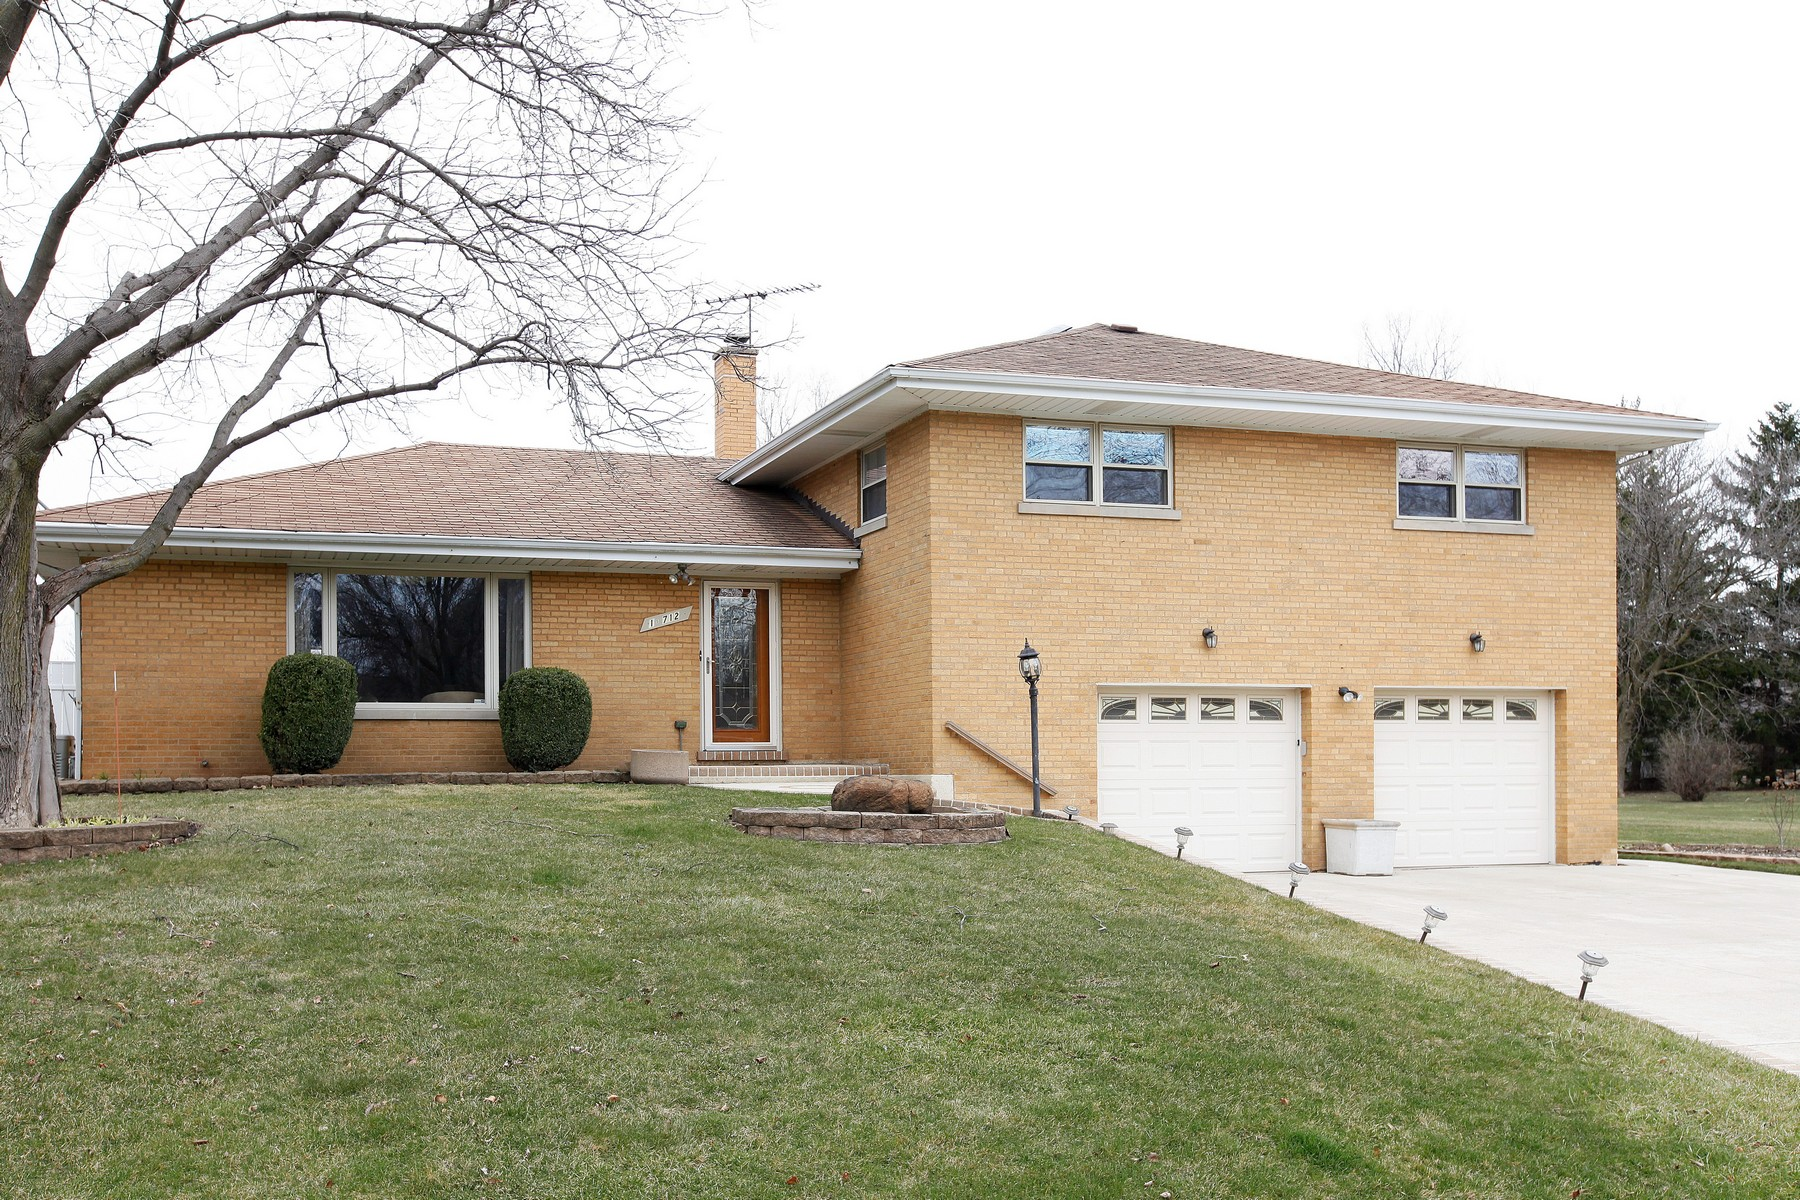 Single Family Home for Sale at 1S712 Vista Ave. Lombard, Illinois 60148 United States